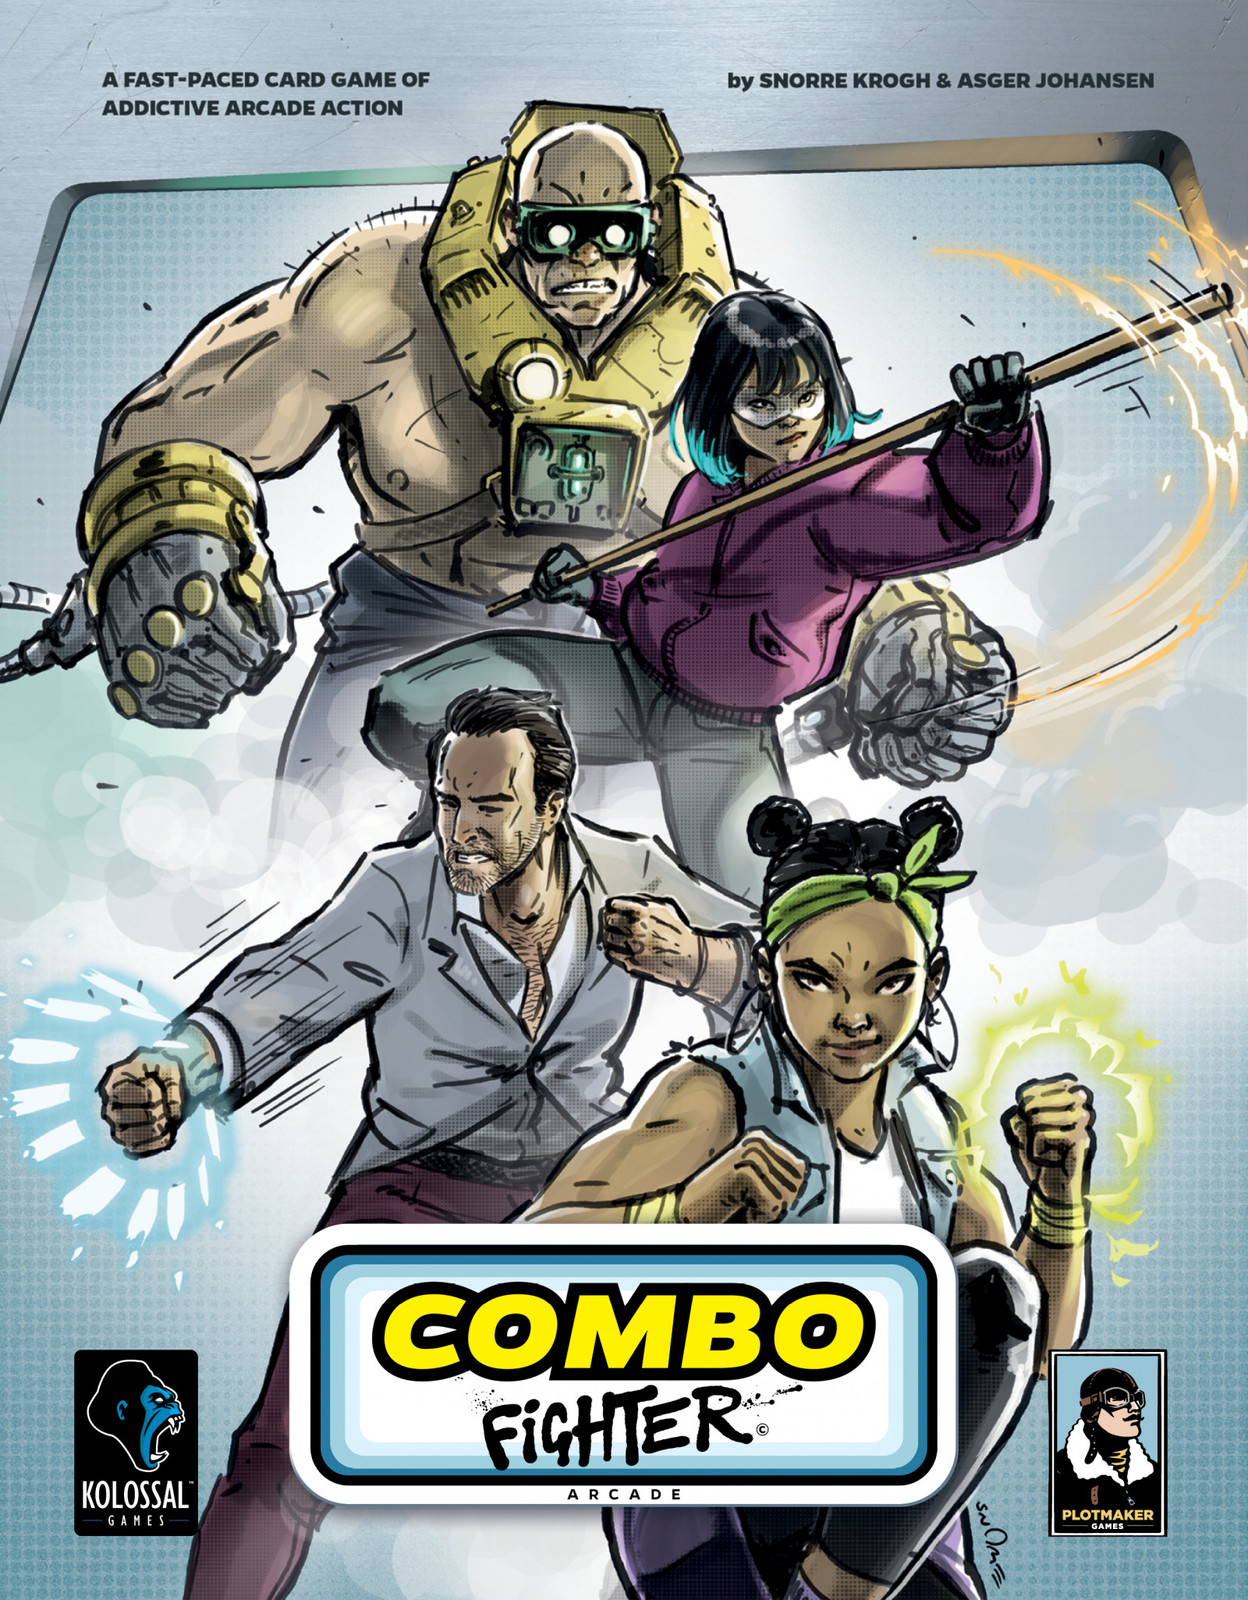 Combo Fighter - Card game image